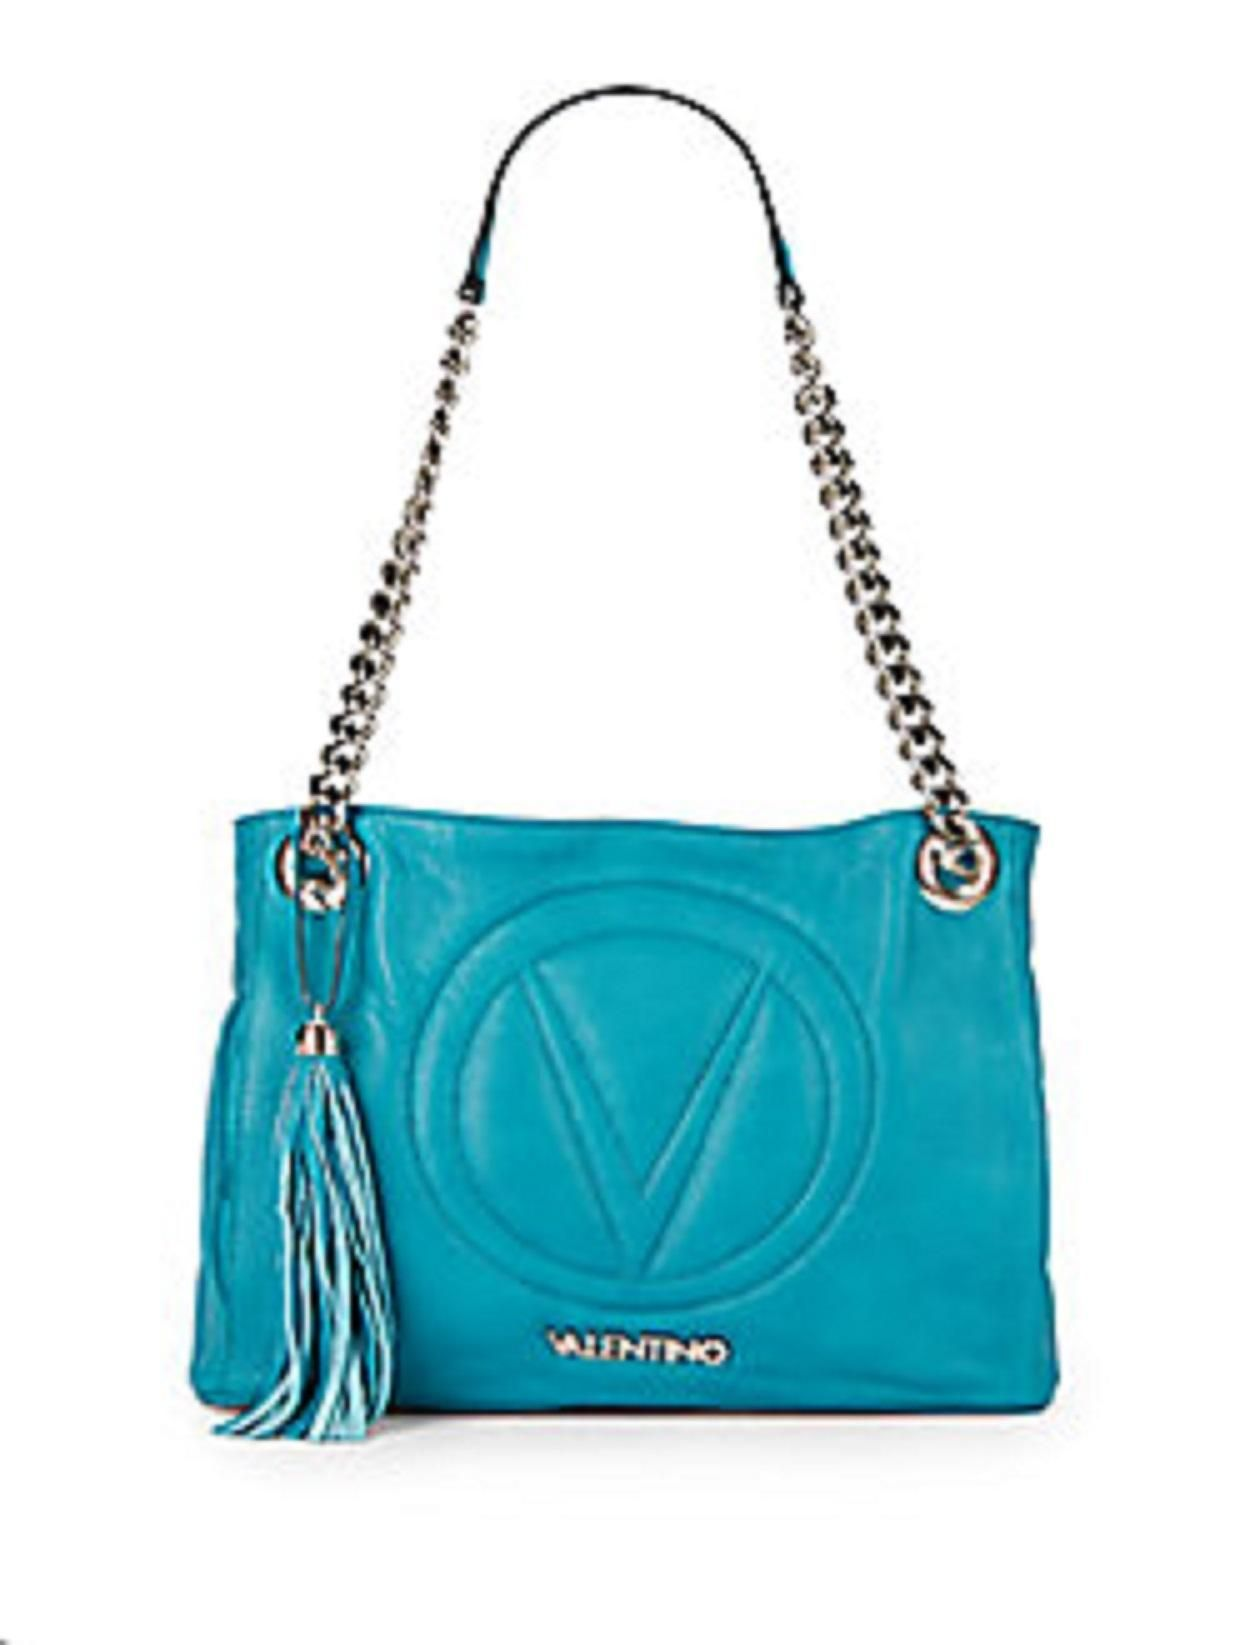 8178fb0a72b Get one of the hottest styles of the season! The Valentino Luisa Quilted  Leather Shoulder Bag is a top 10 member favorite on Tradesy.